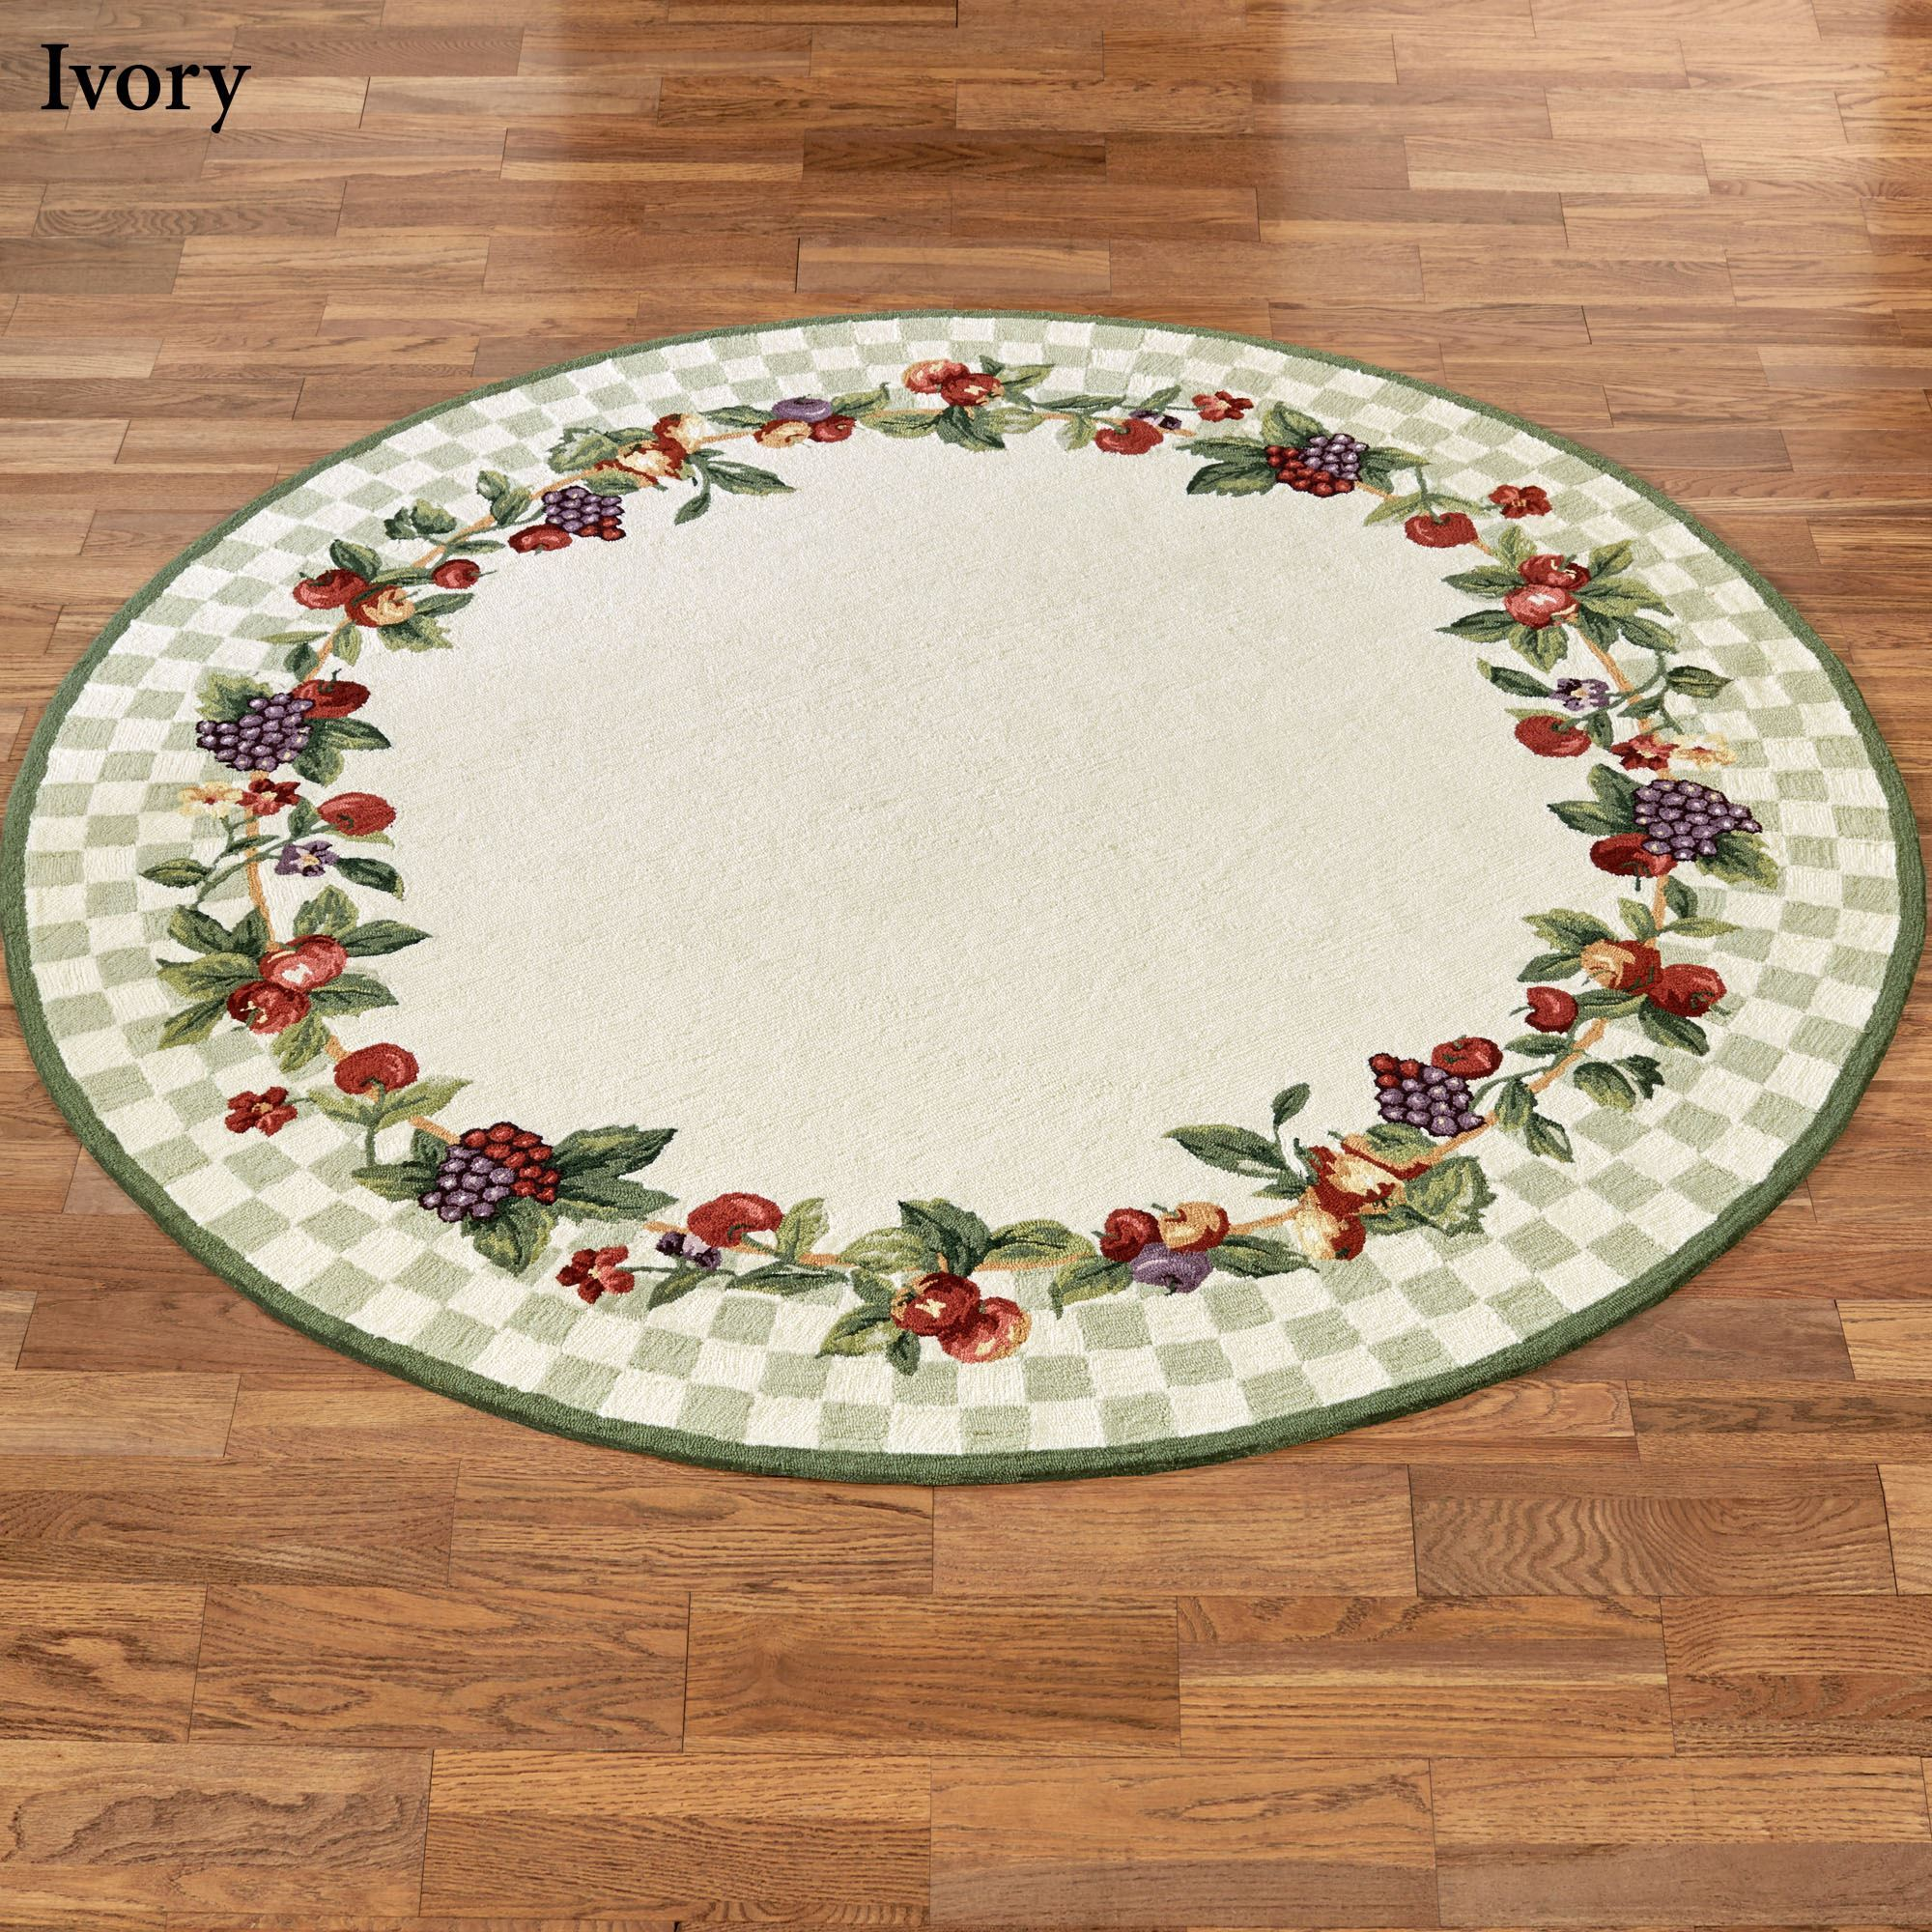 Sonoma hand hooked fruit round rugs for Round carpets and rugs